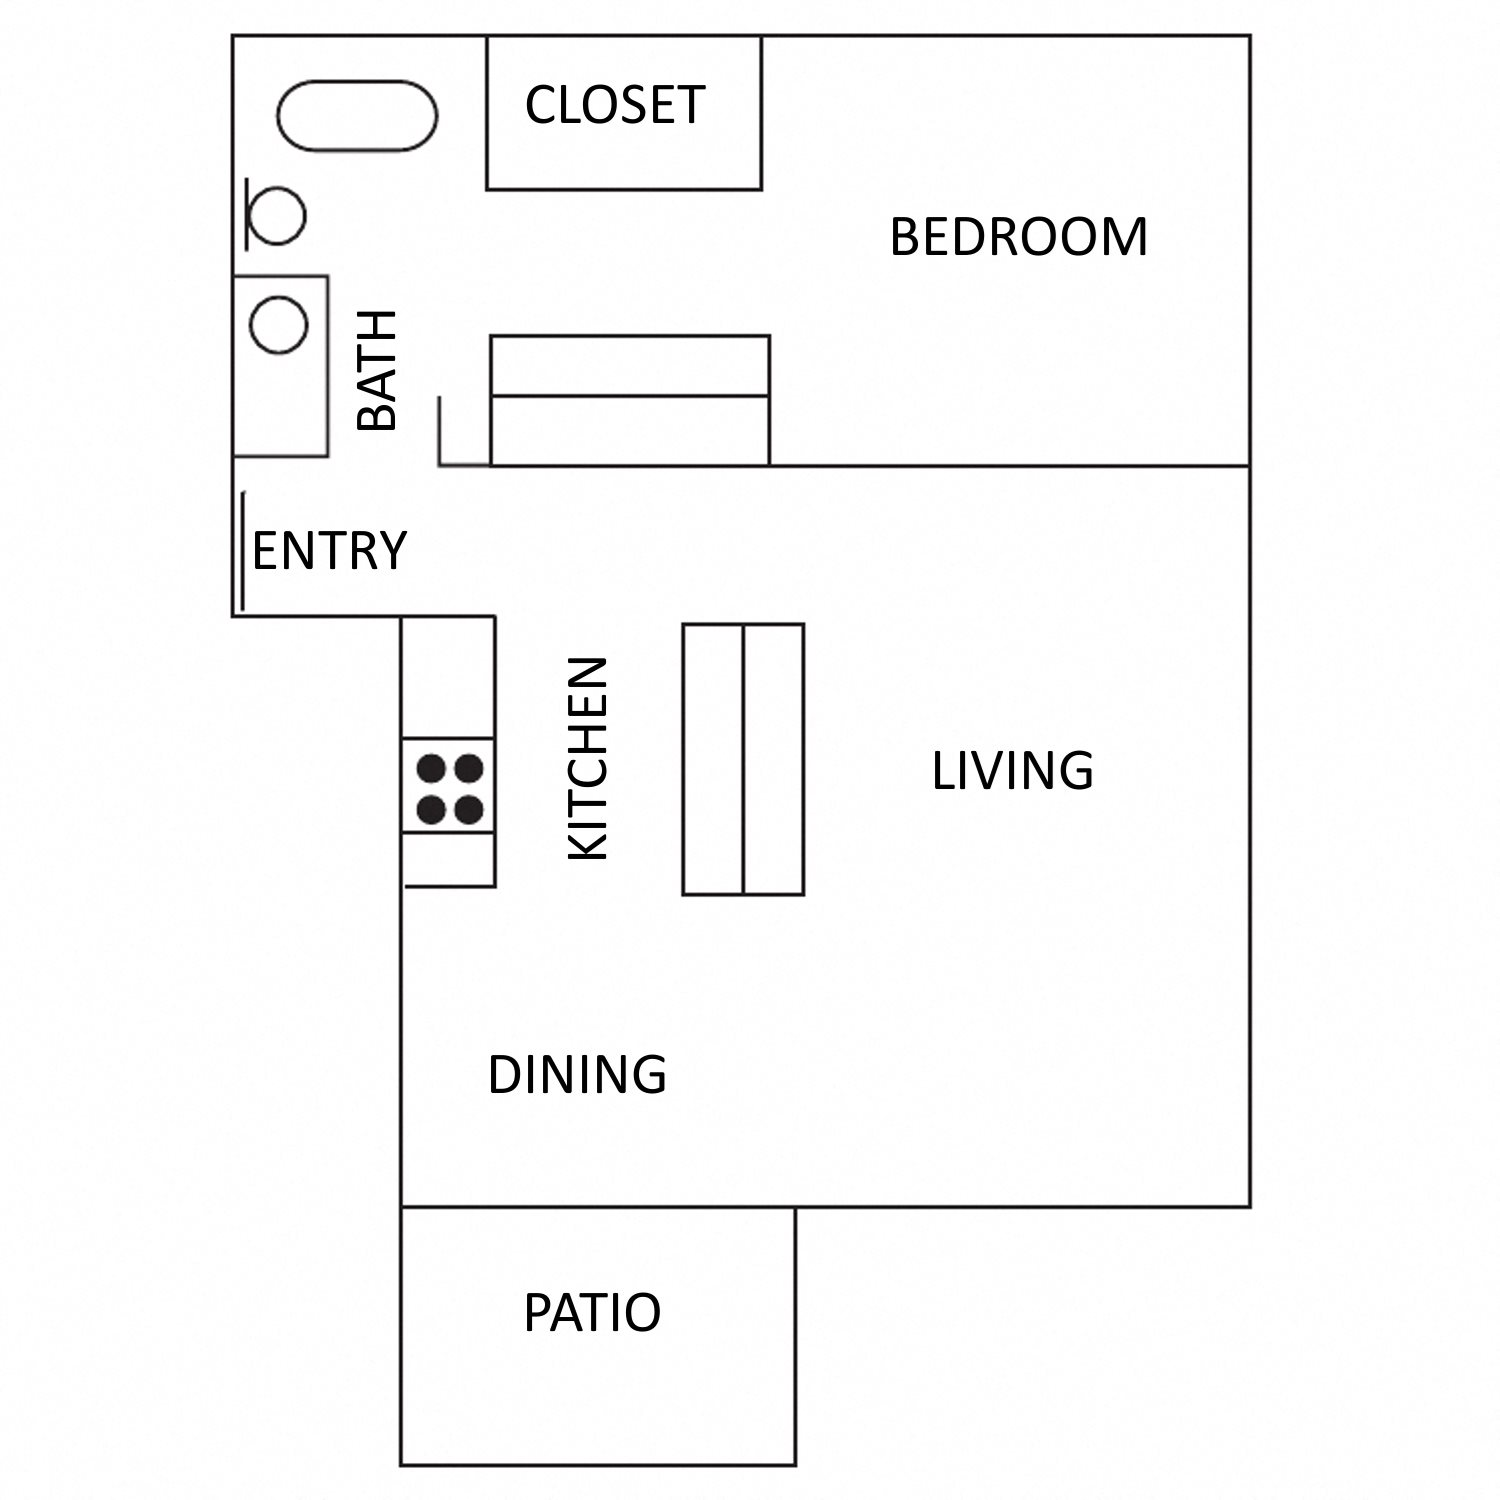 1 Bedroom 1 Bath Flat Floor Plan 2